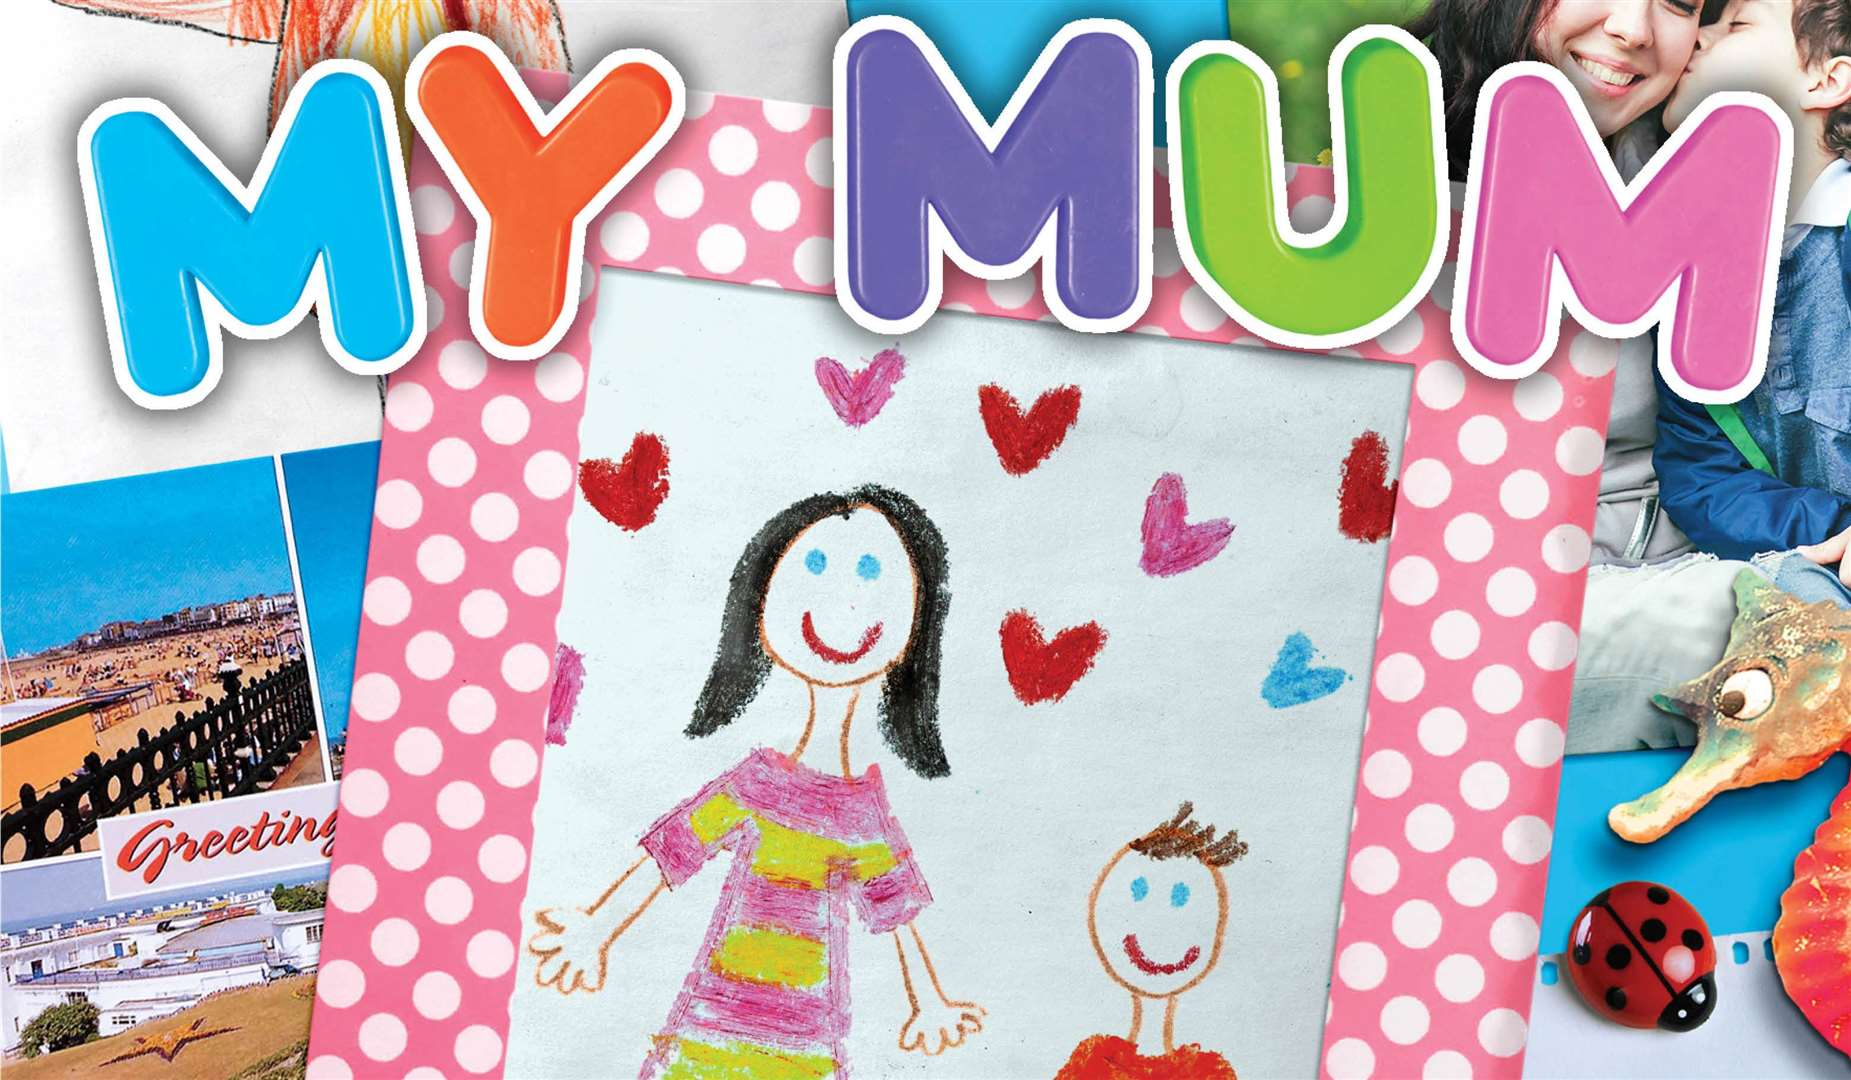 If your child drew a picture for My Mum you can now order it online